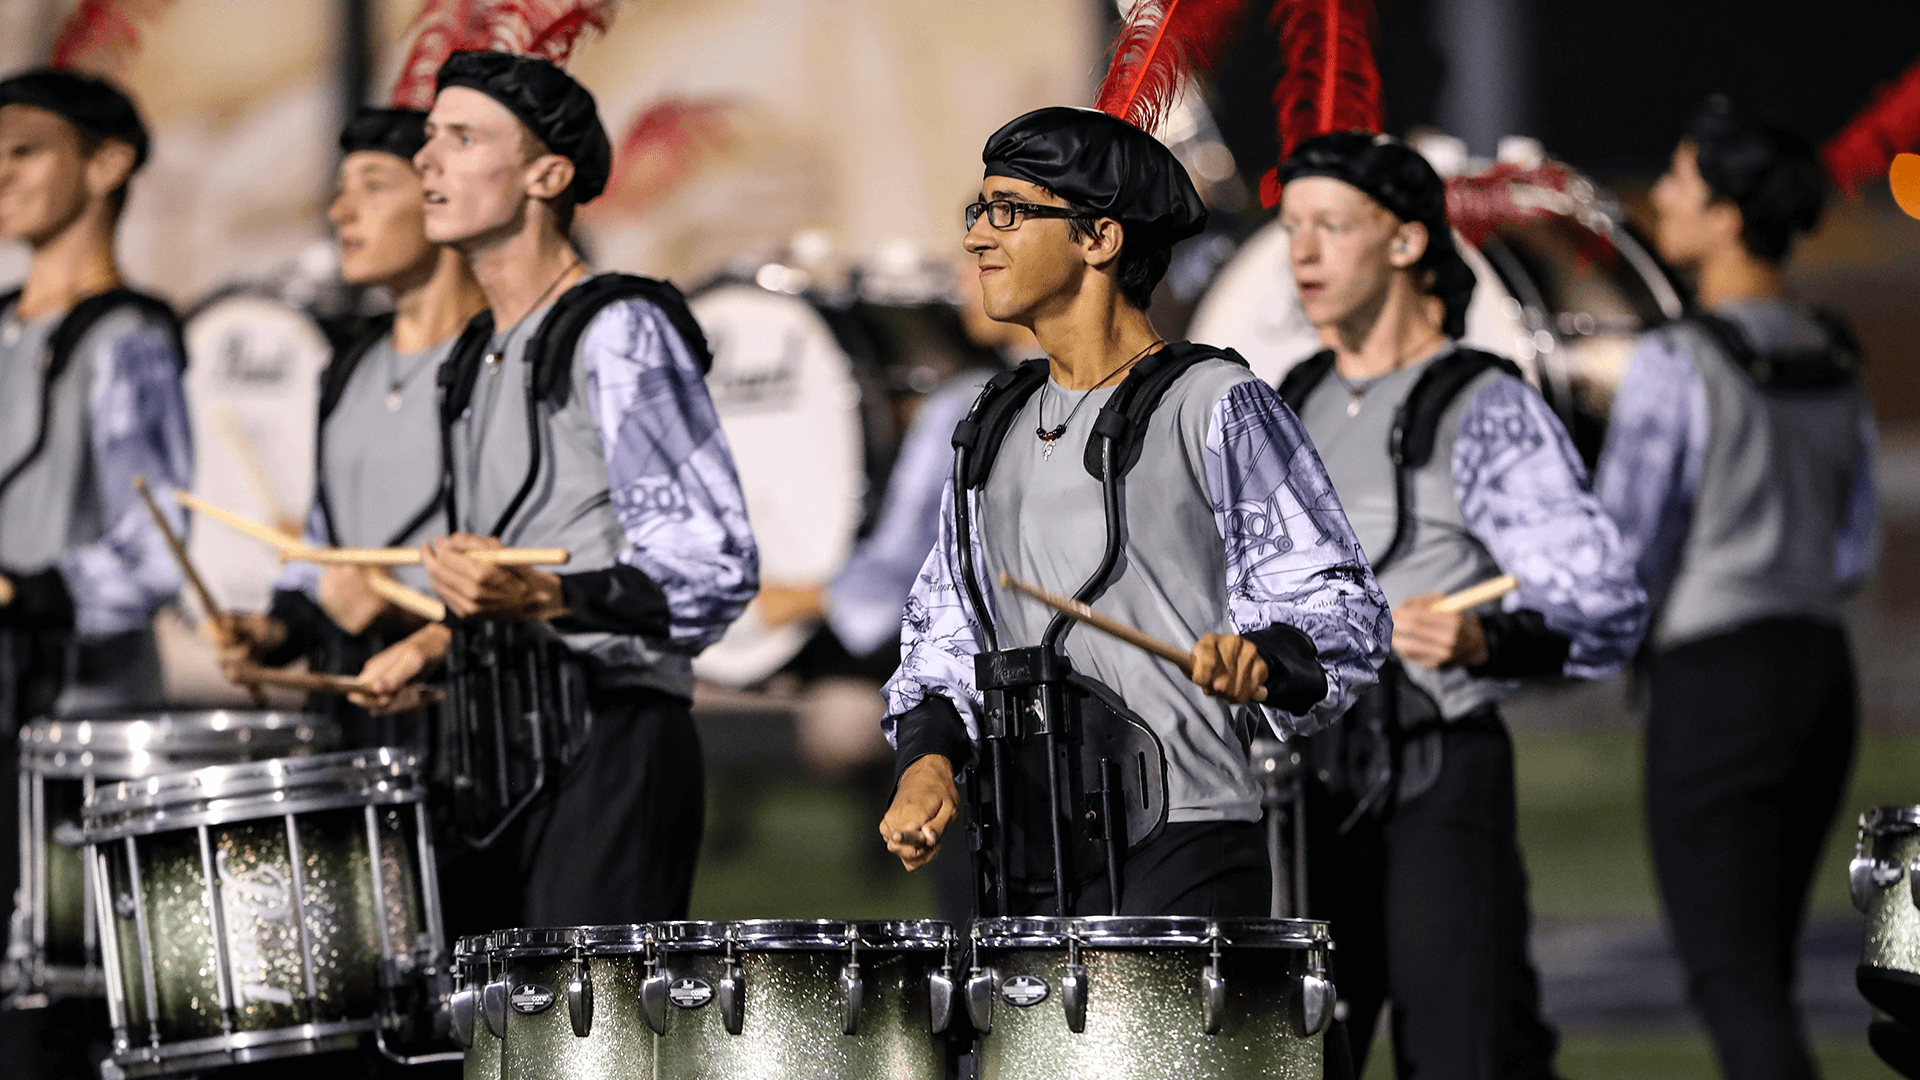 DCI New Hampshire